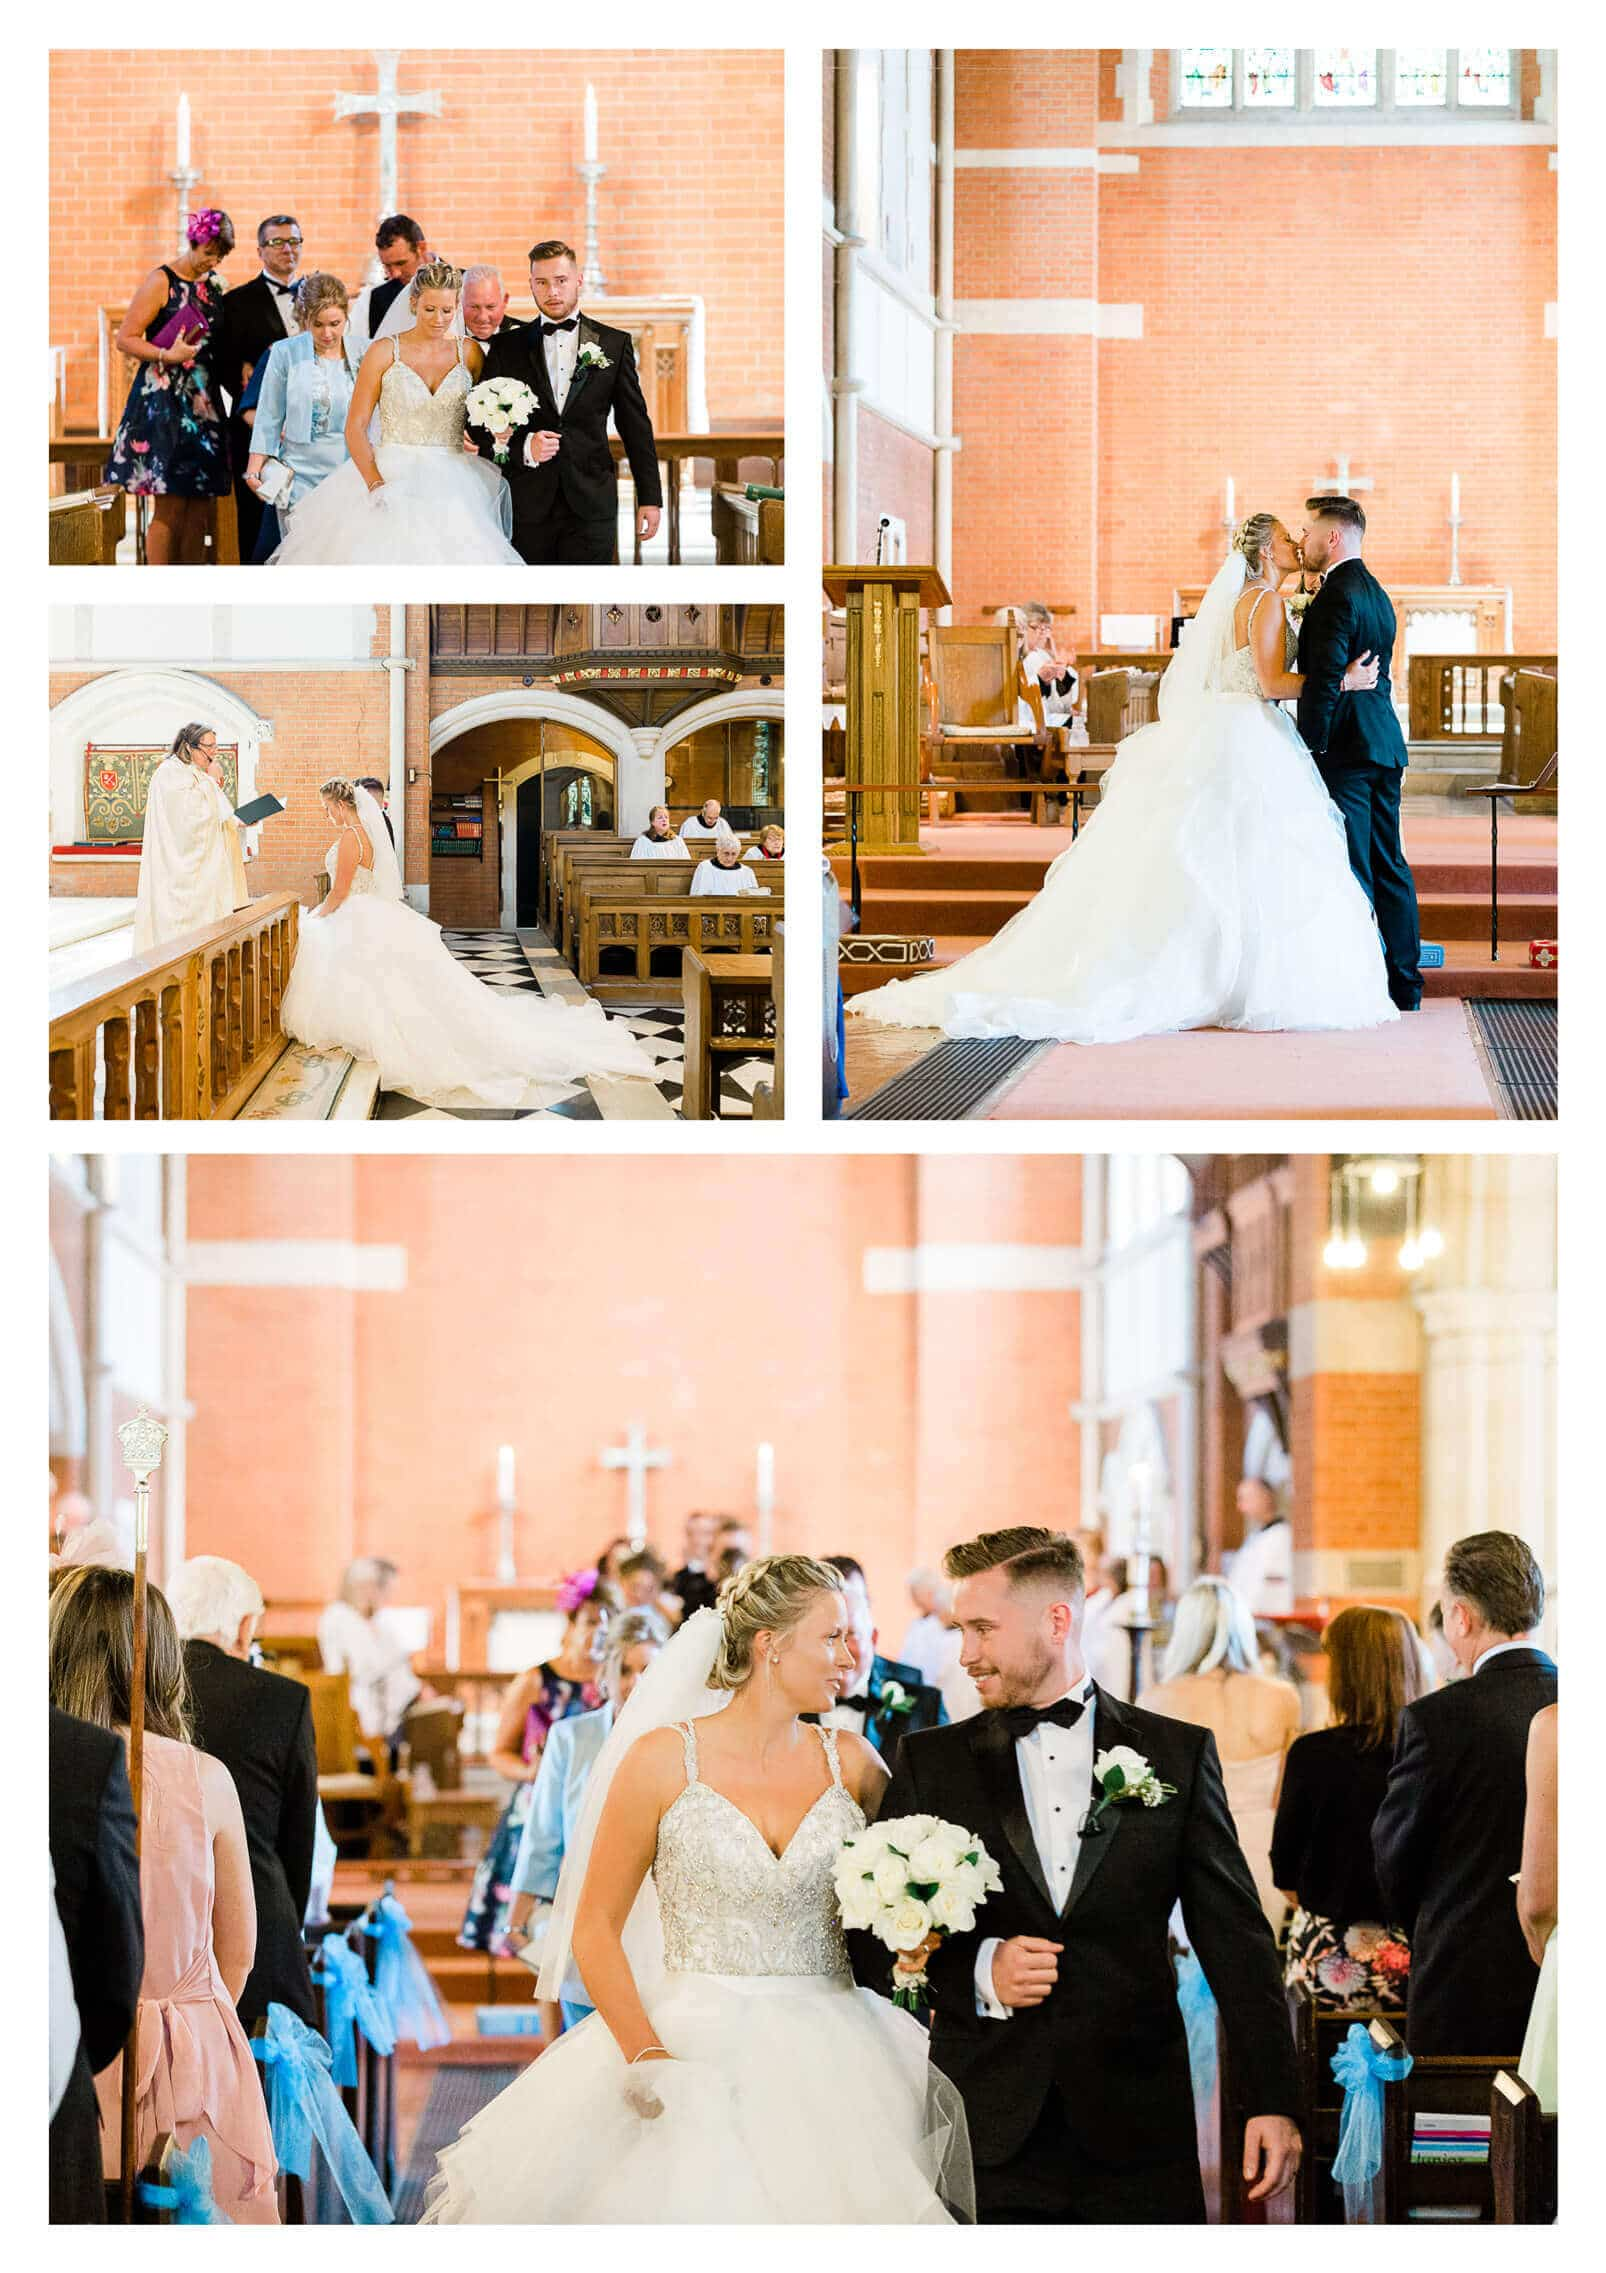 St Marks Church wedding ceremony in Purley | Croydon photographer